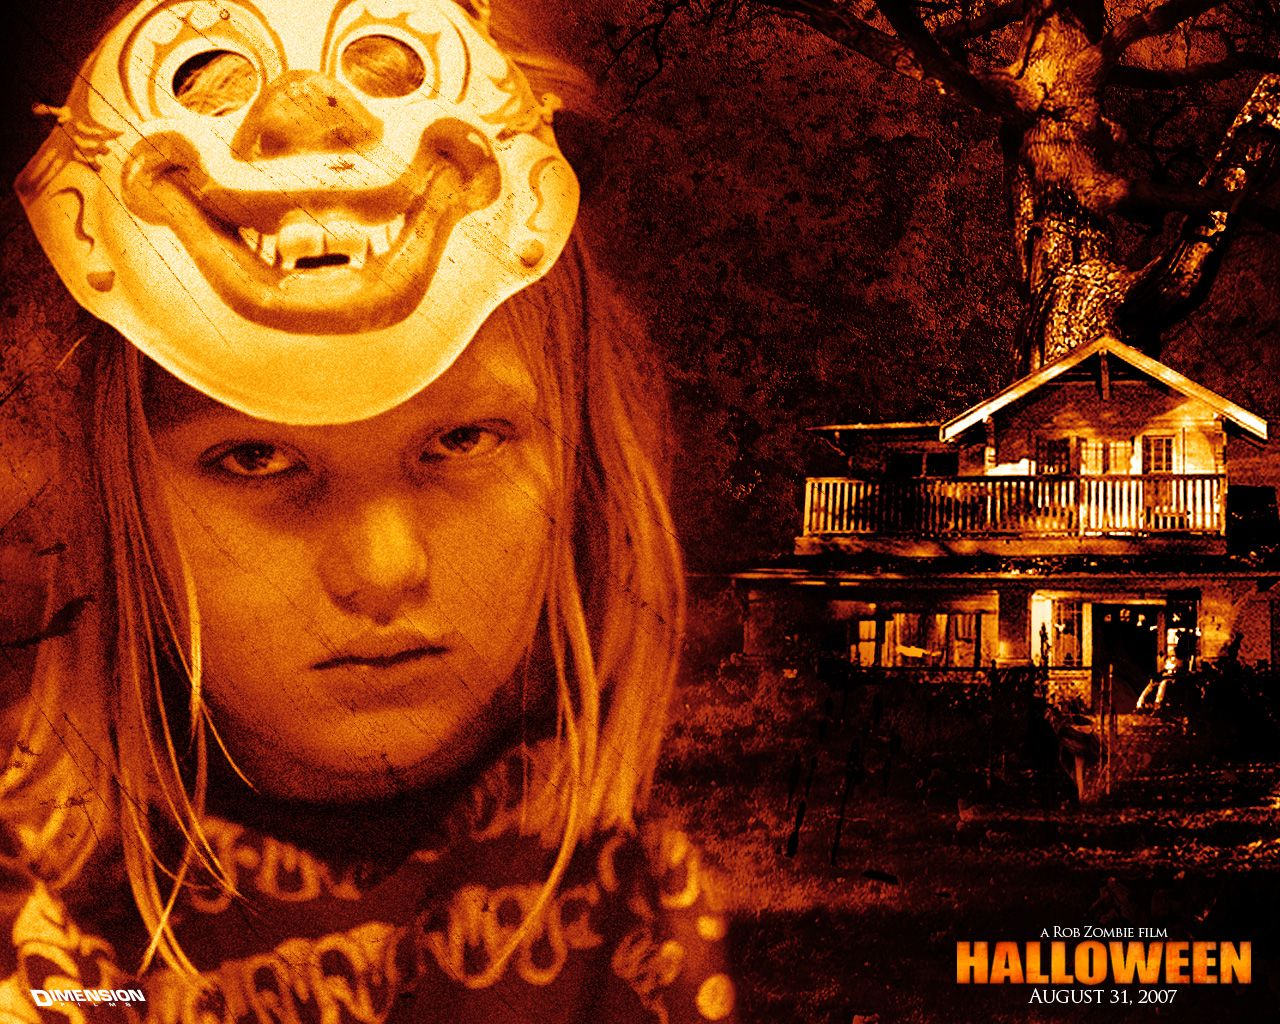 posters and a still from rob zombies halloweenone of my favorite movies along with the classics hd wallpaper and background photos of michael myers - Halloween Movie By Rob Zombie